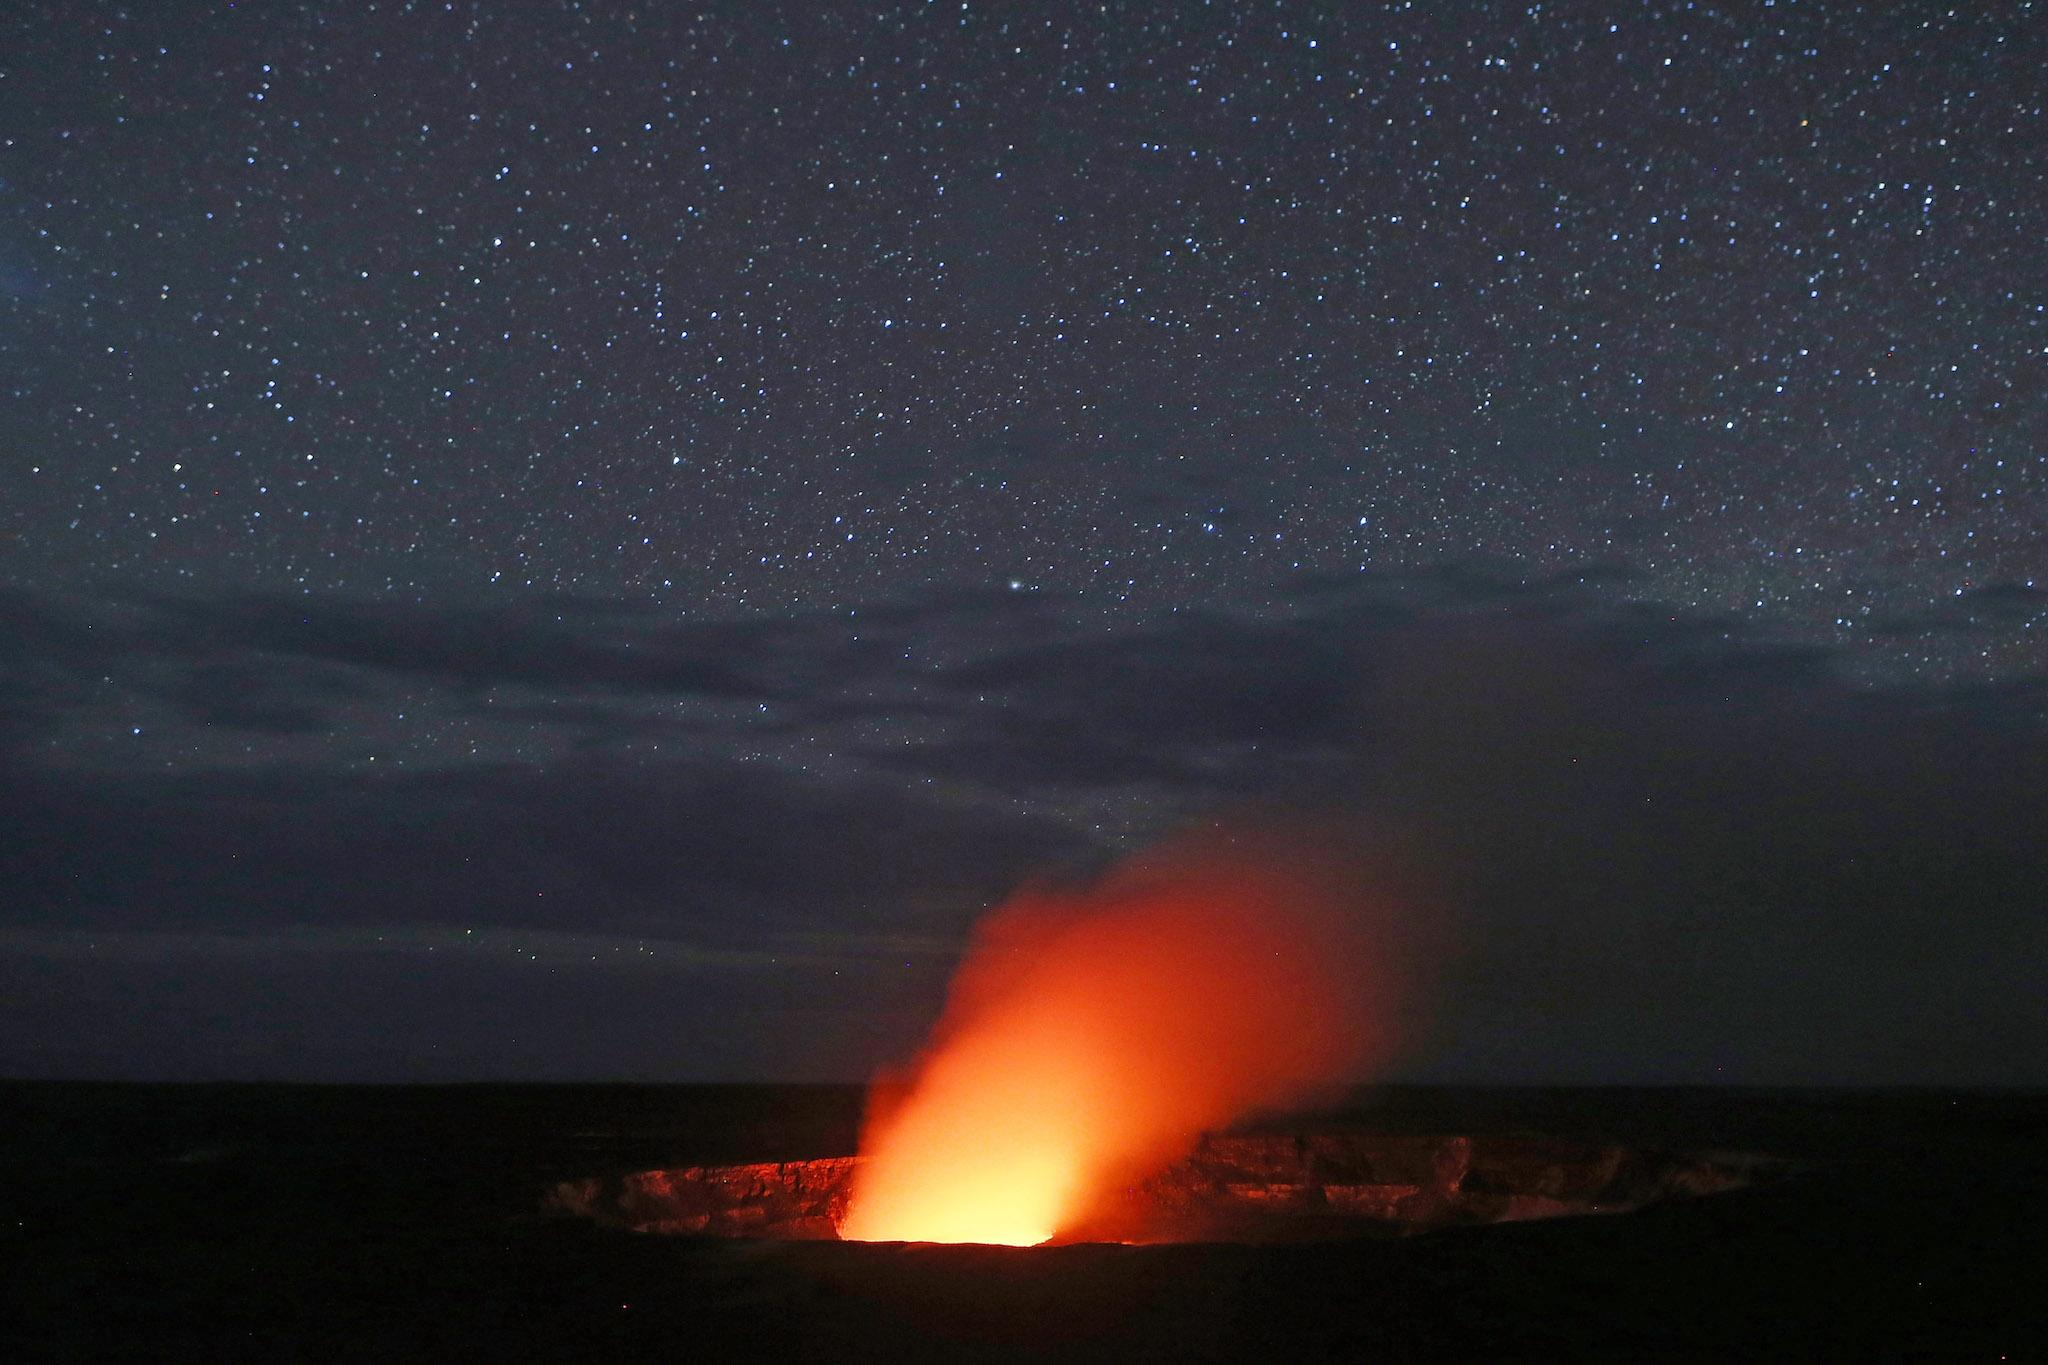 Hawaii volcano: 3D video shows stunning size of huge Kilauea lava lake that threatens island communities